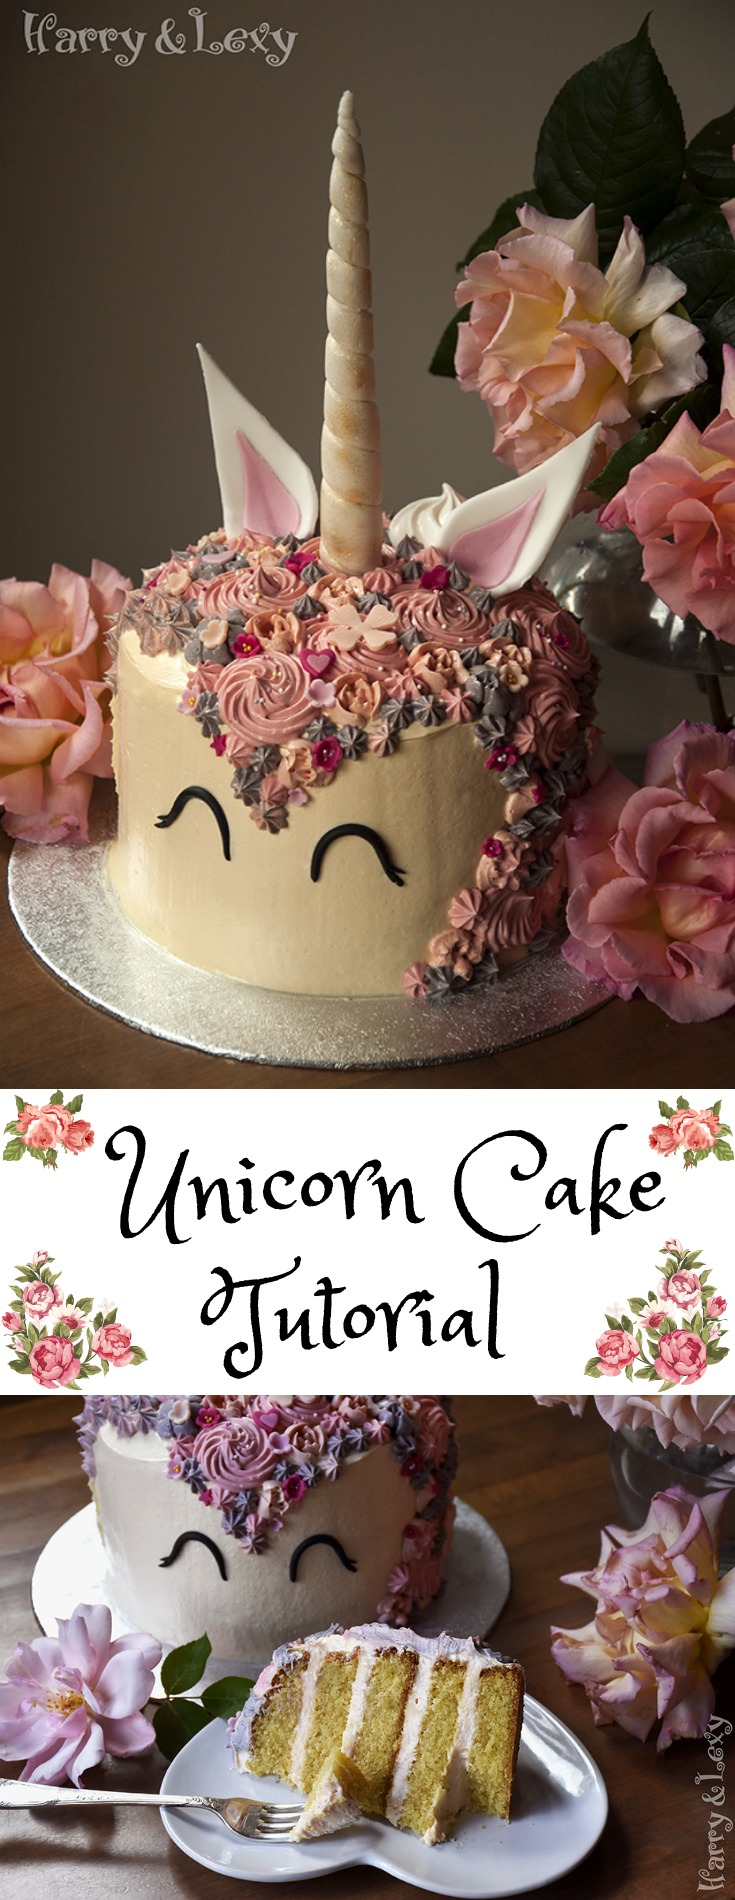 How To Make Unicorn Cake Step By Step Recipe Harry